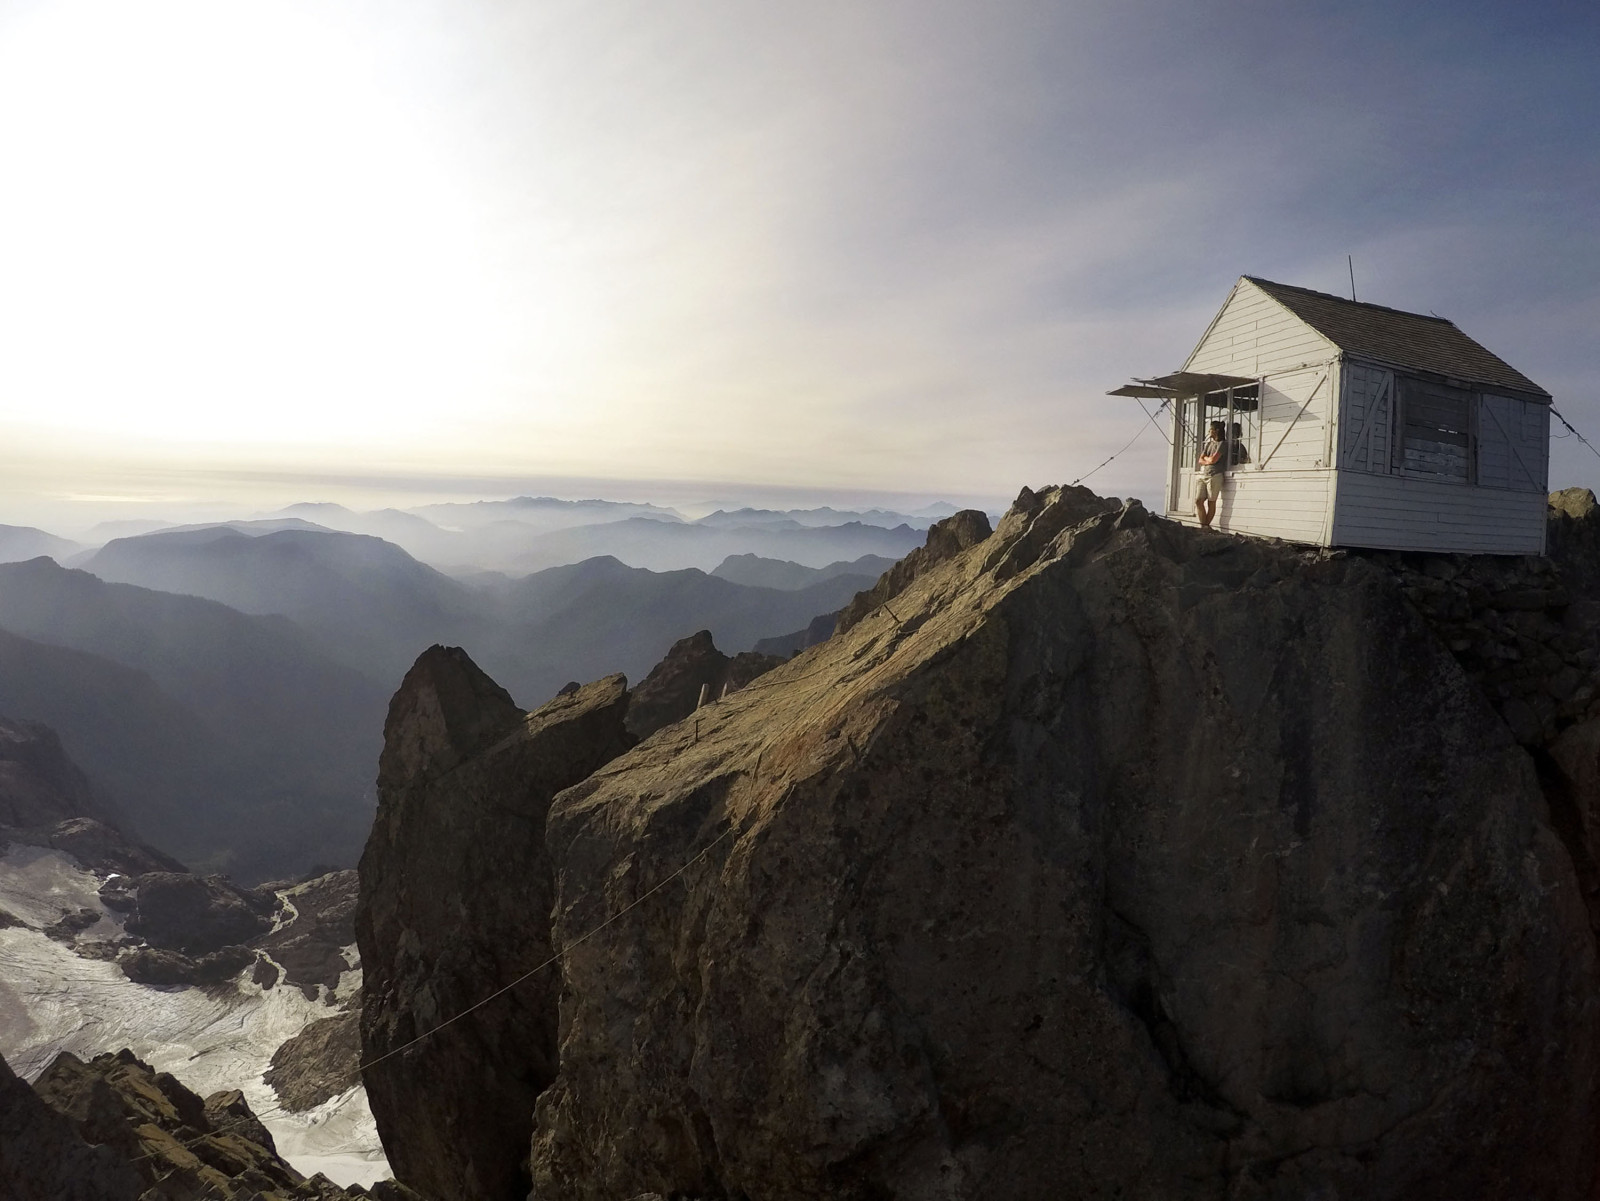 A night spent above the clouds at an old fire lookout cabin in Washington's Mt. Baker-Snoqualmie National Forest. (Cristina Woodworth)